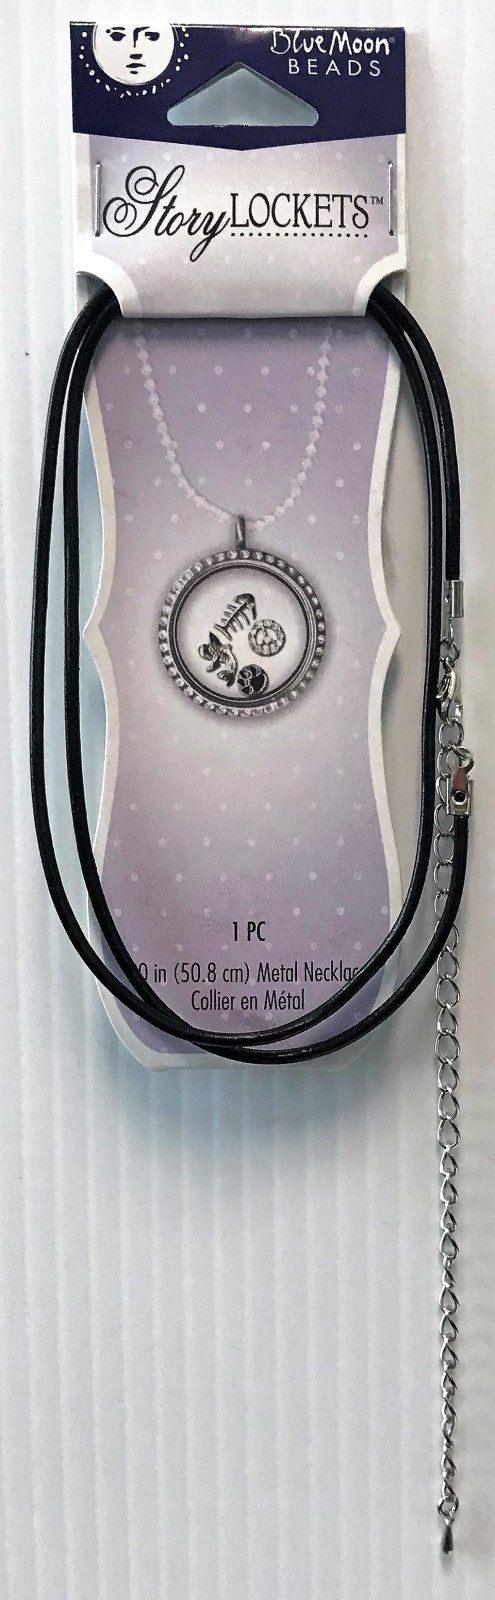 BLUE MOON BEADS - STORY LOCKETS - 20 LEATHER NECKLACE - BLACK..